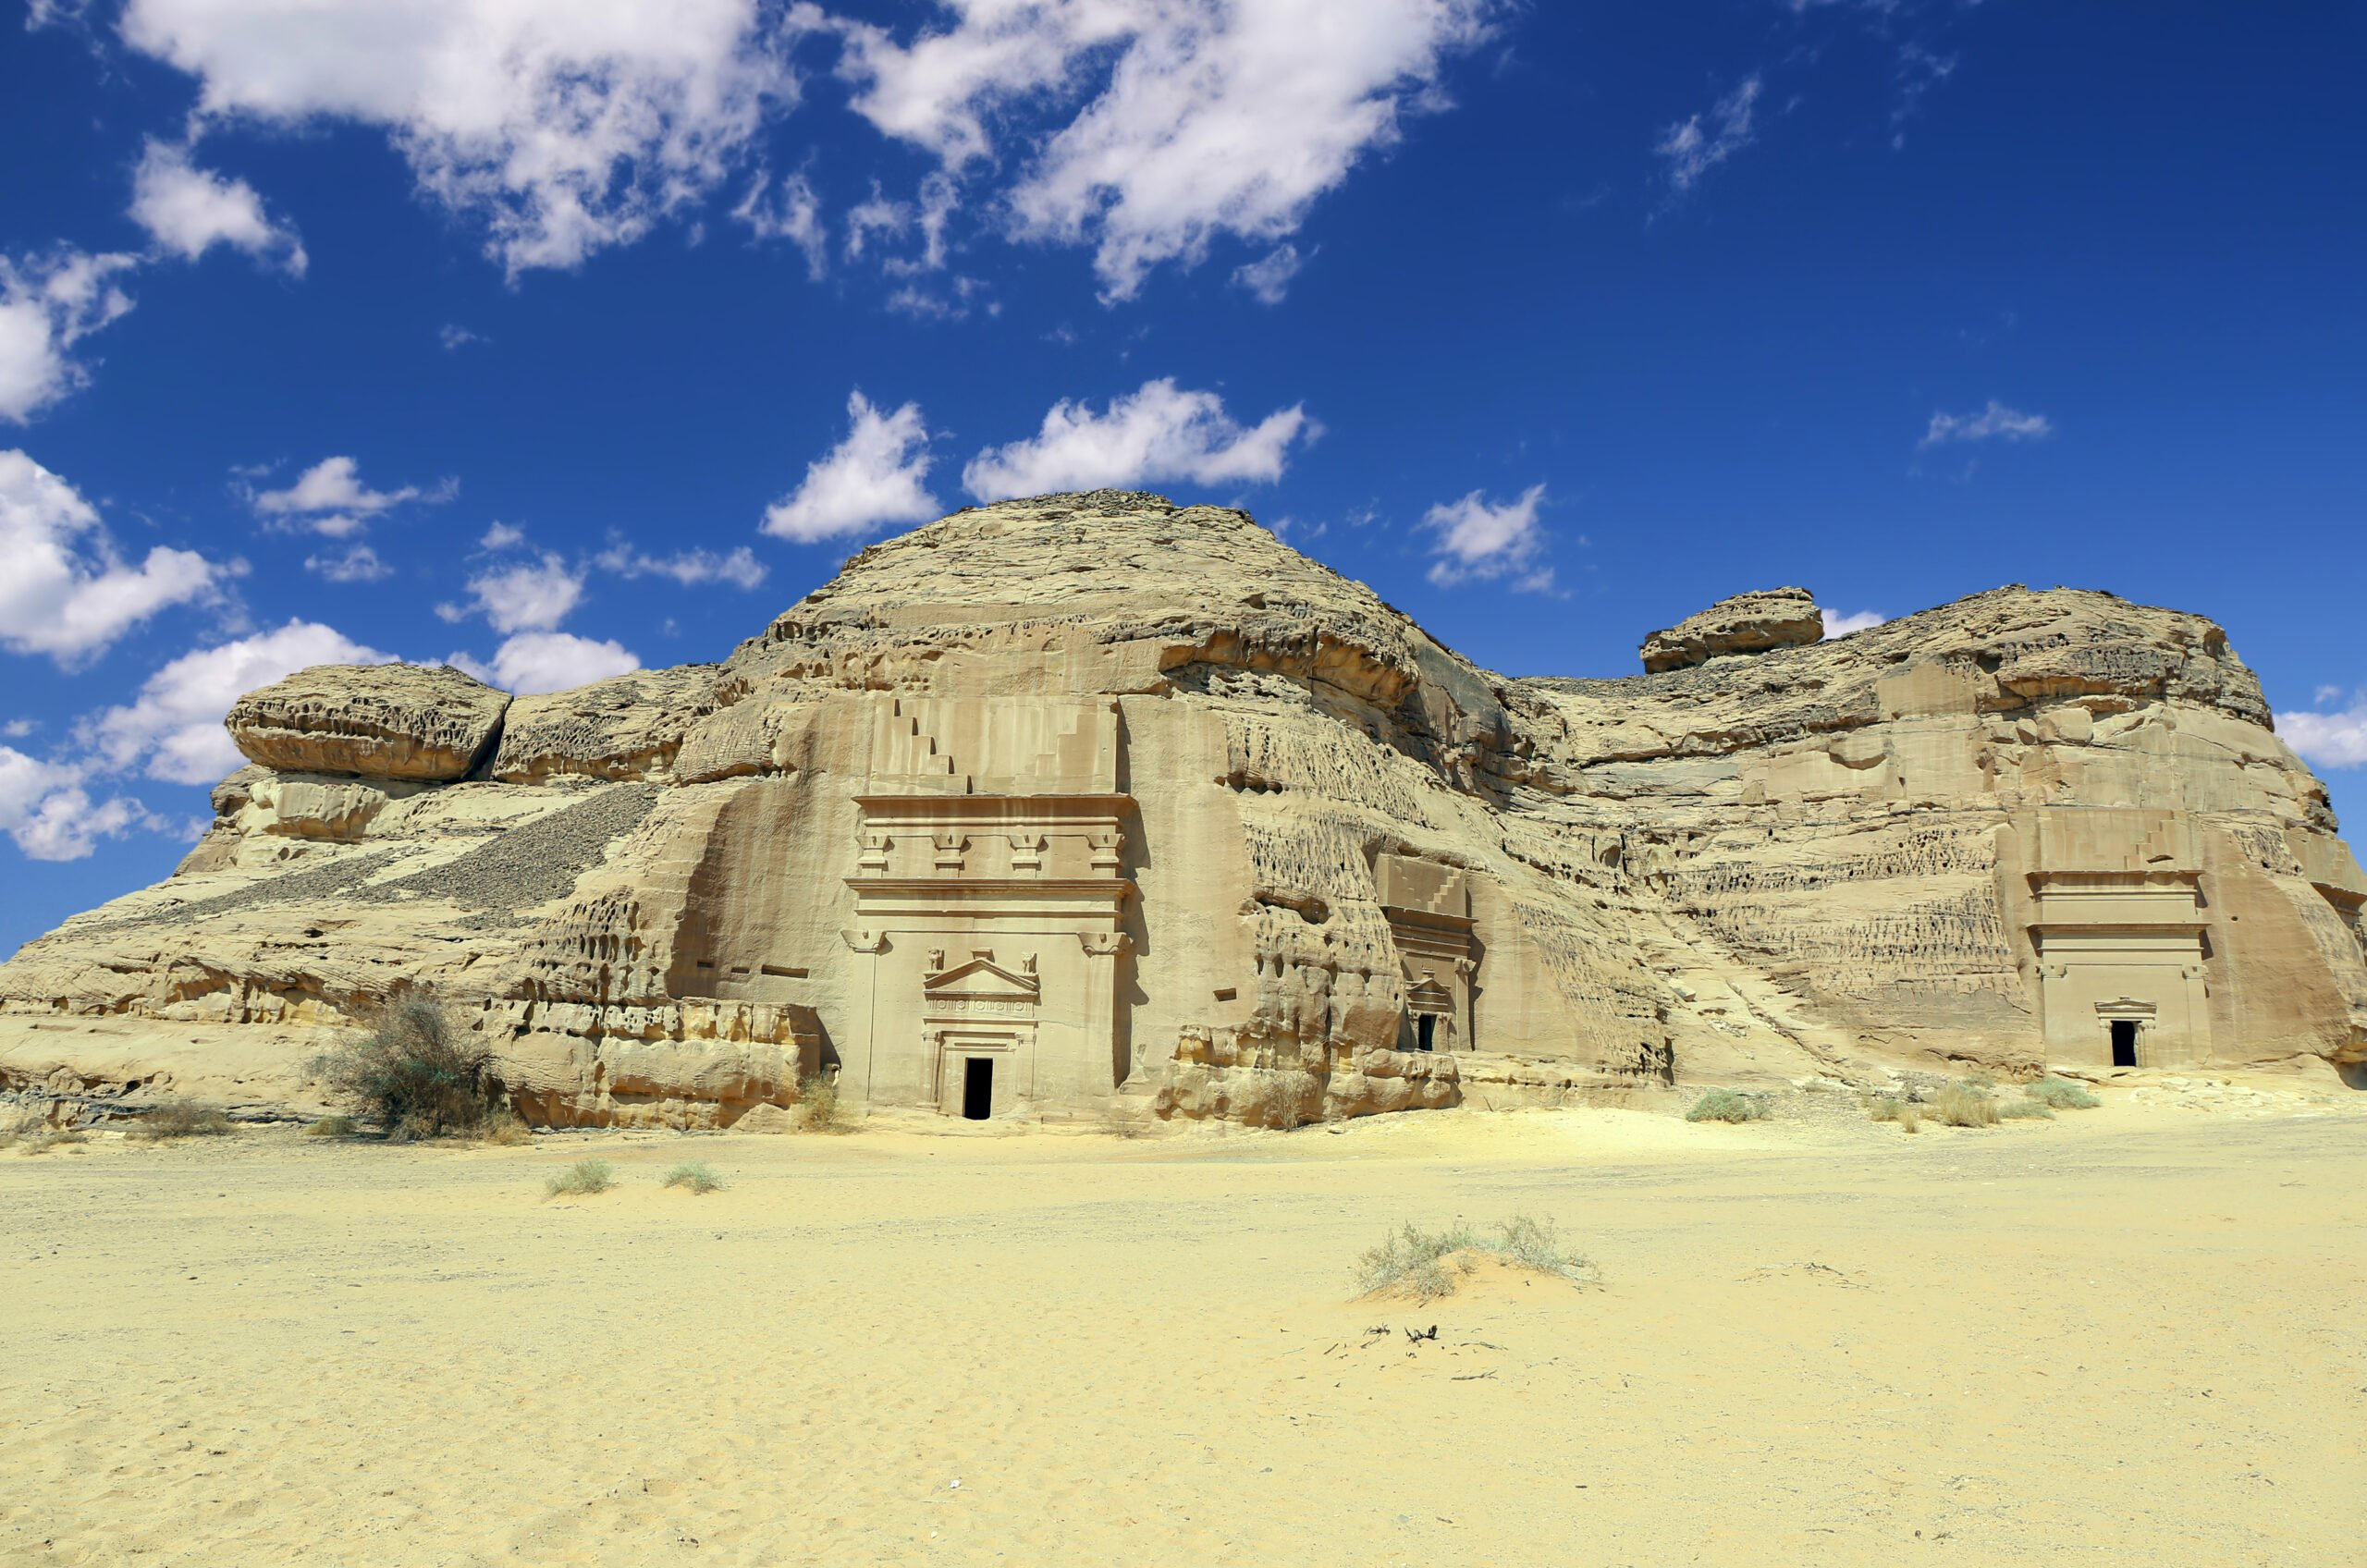 Discover The Beautiful Handmade Houses In Madain Saleh During The 3 Day Madain Saleh Tour From Al Ula